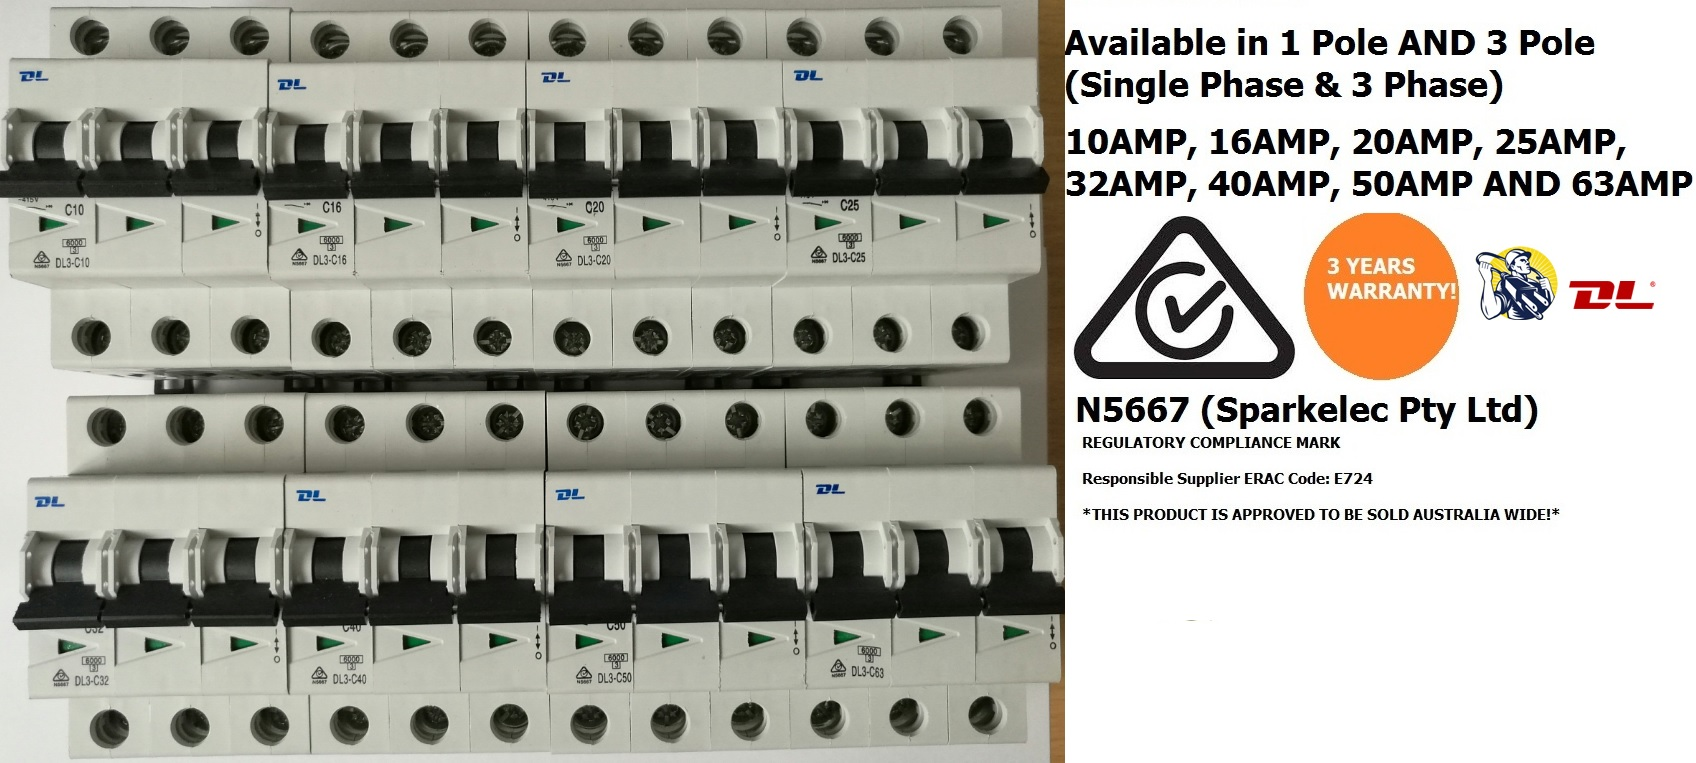 Three phase mcb circuit breaker 50amp - 3 years warranty from dl